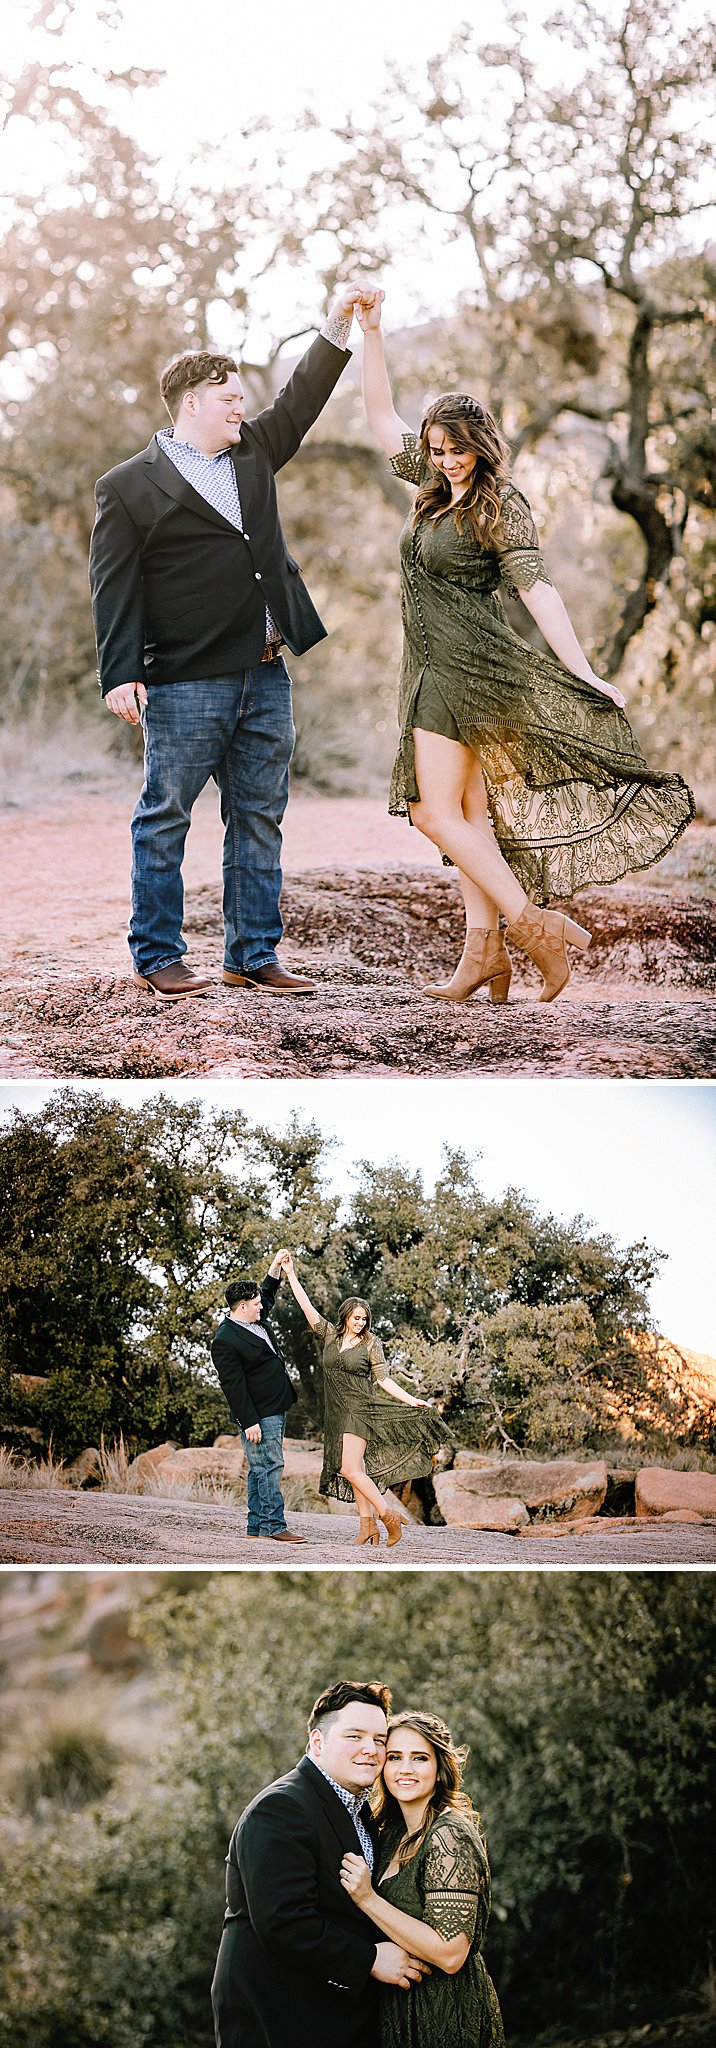 Carly-Barton-Photography-Fredericksburg-Texas-Engagement-Session-Enchanted-Rock-Photos_0022.jpg